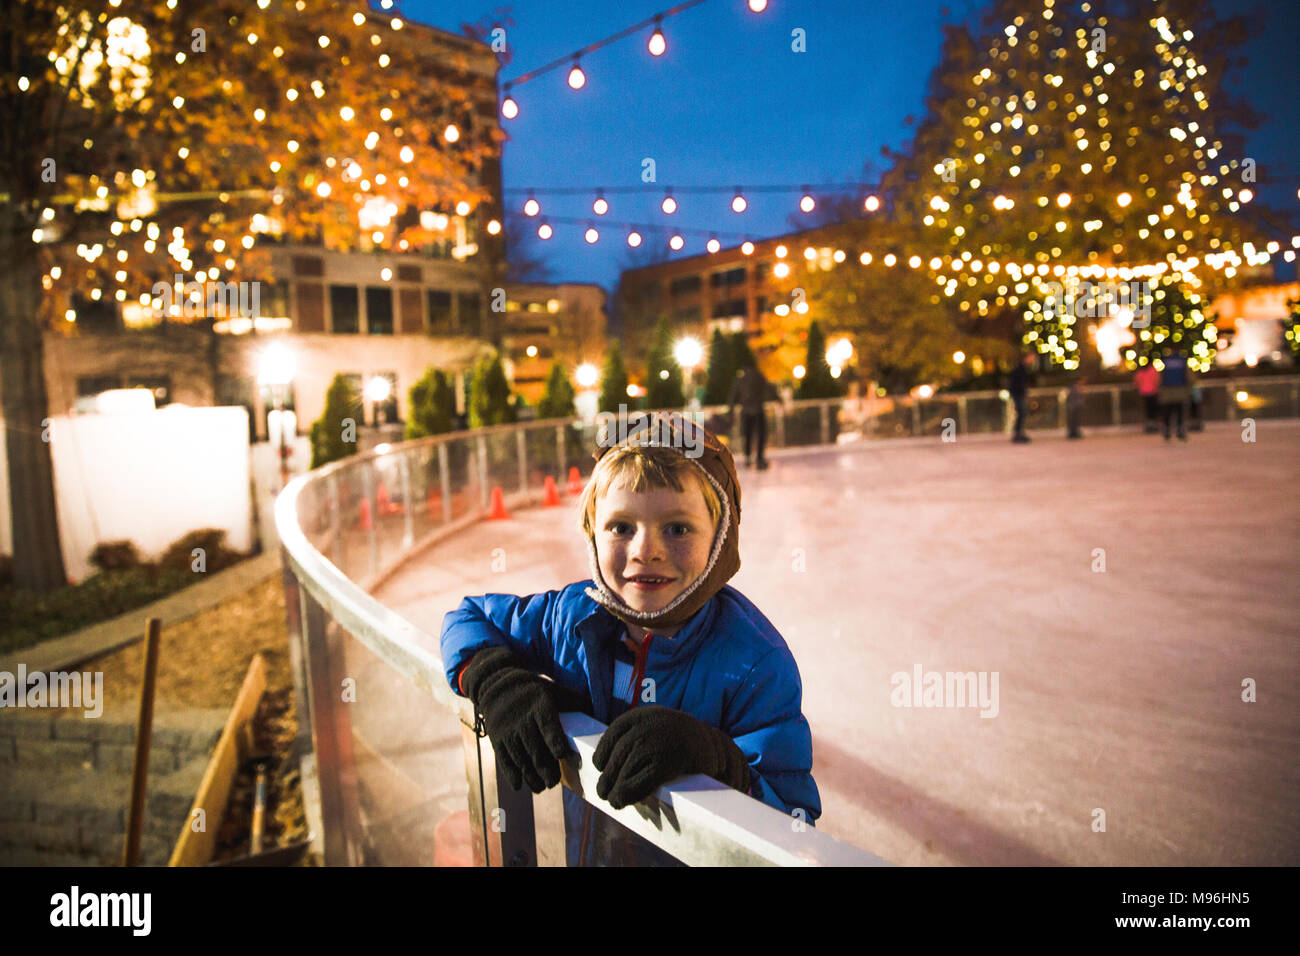 Boy looking at camera at the side of a skating rink - Stock Image